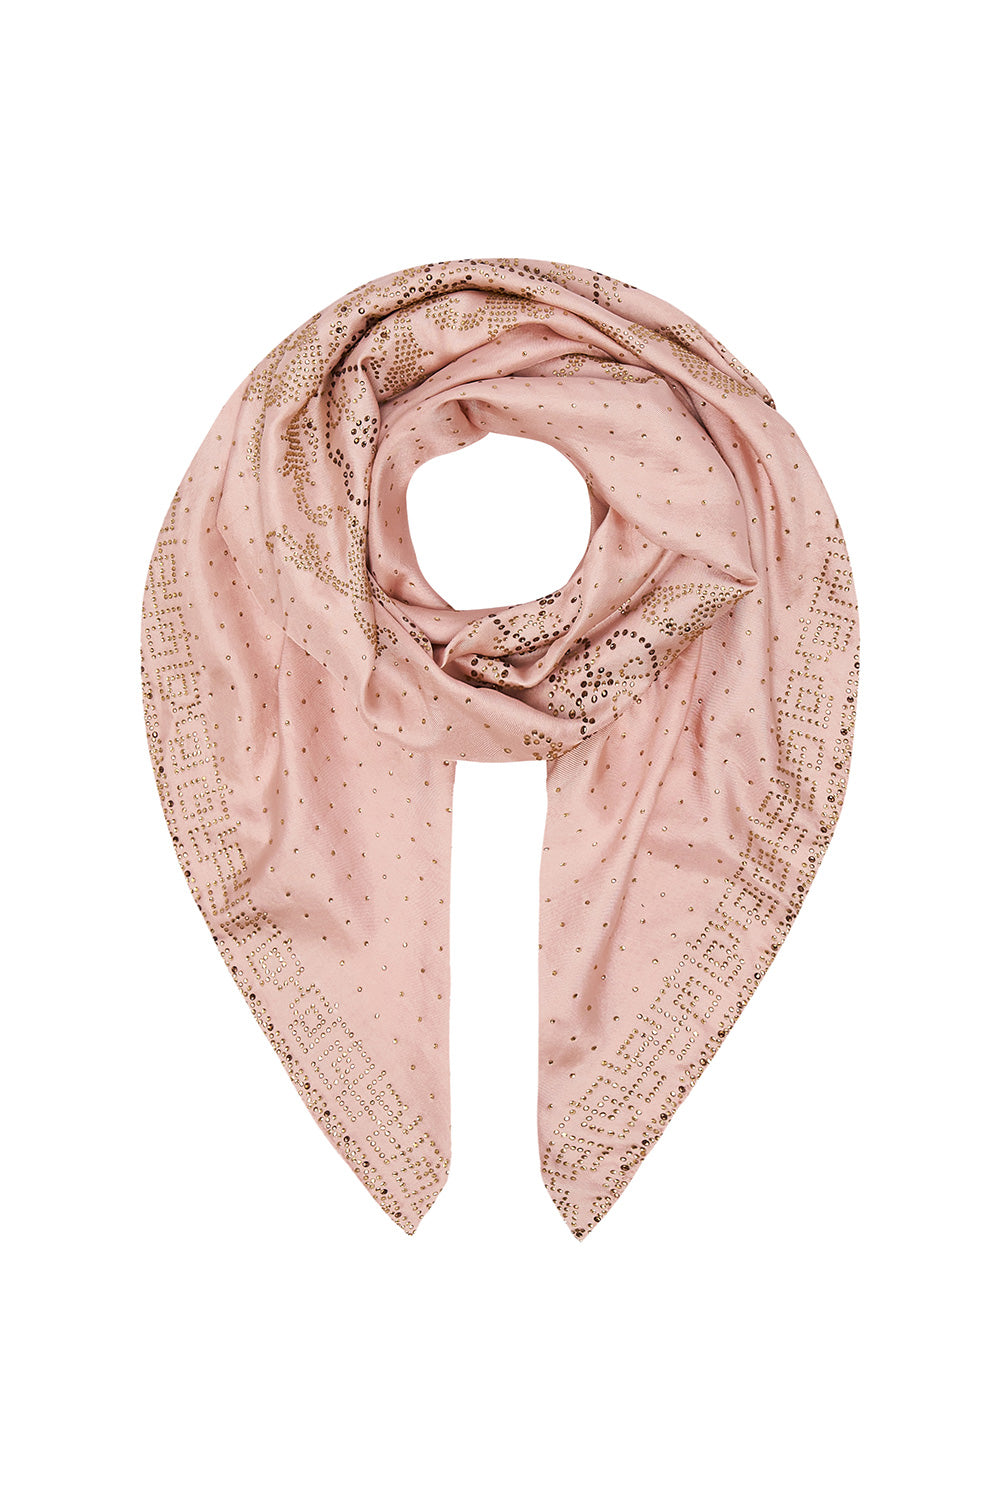 LARGE SQUARE SCARF LUXE PINK